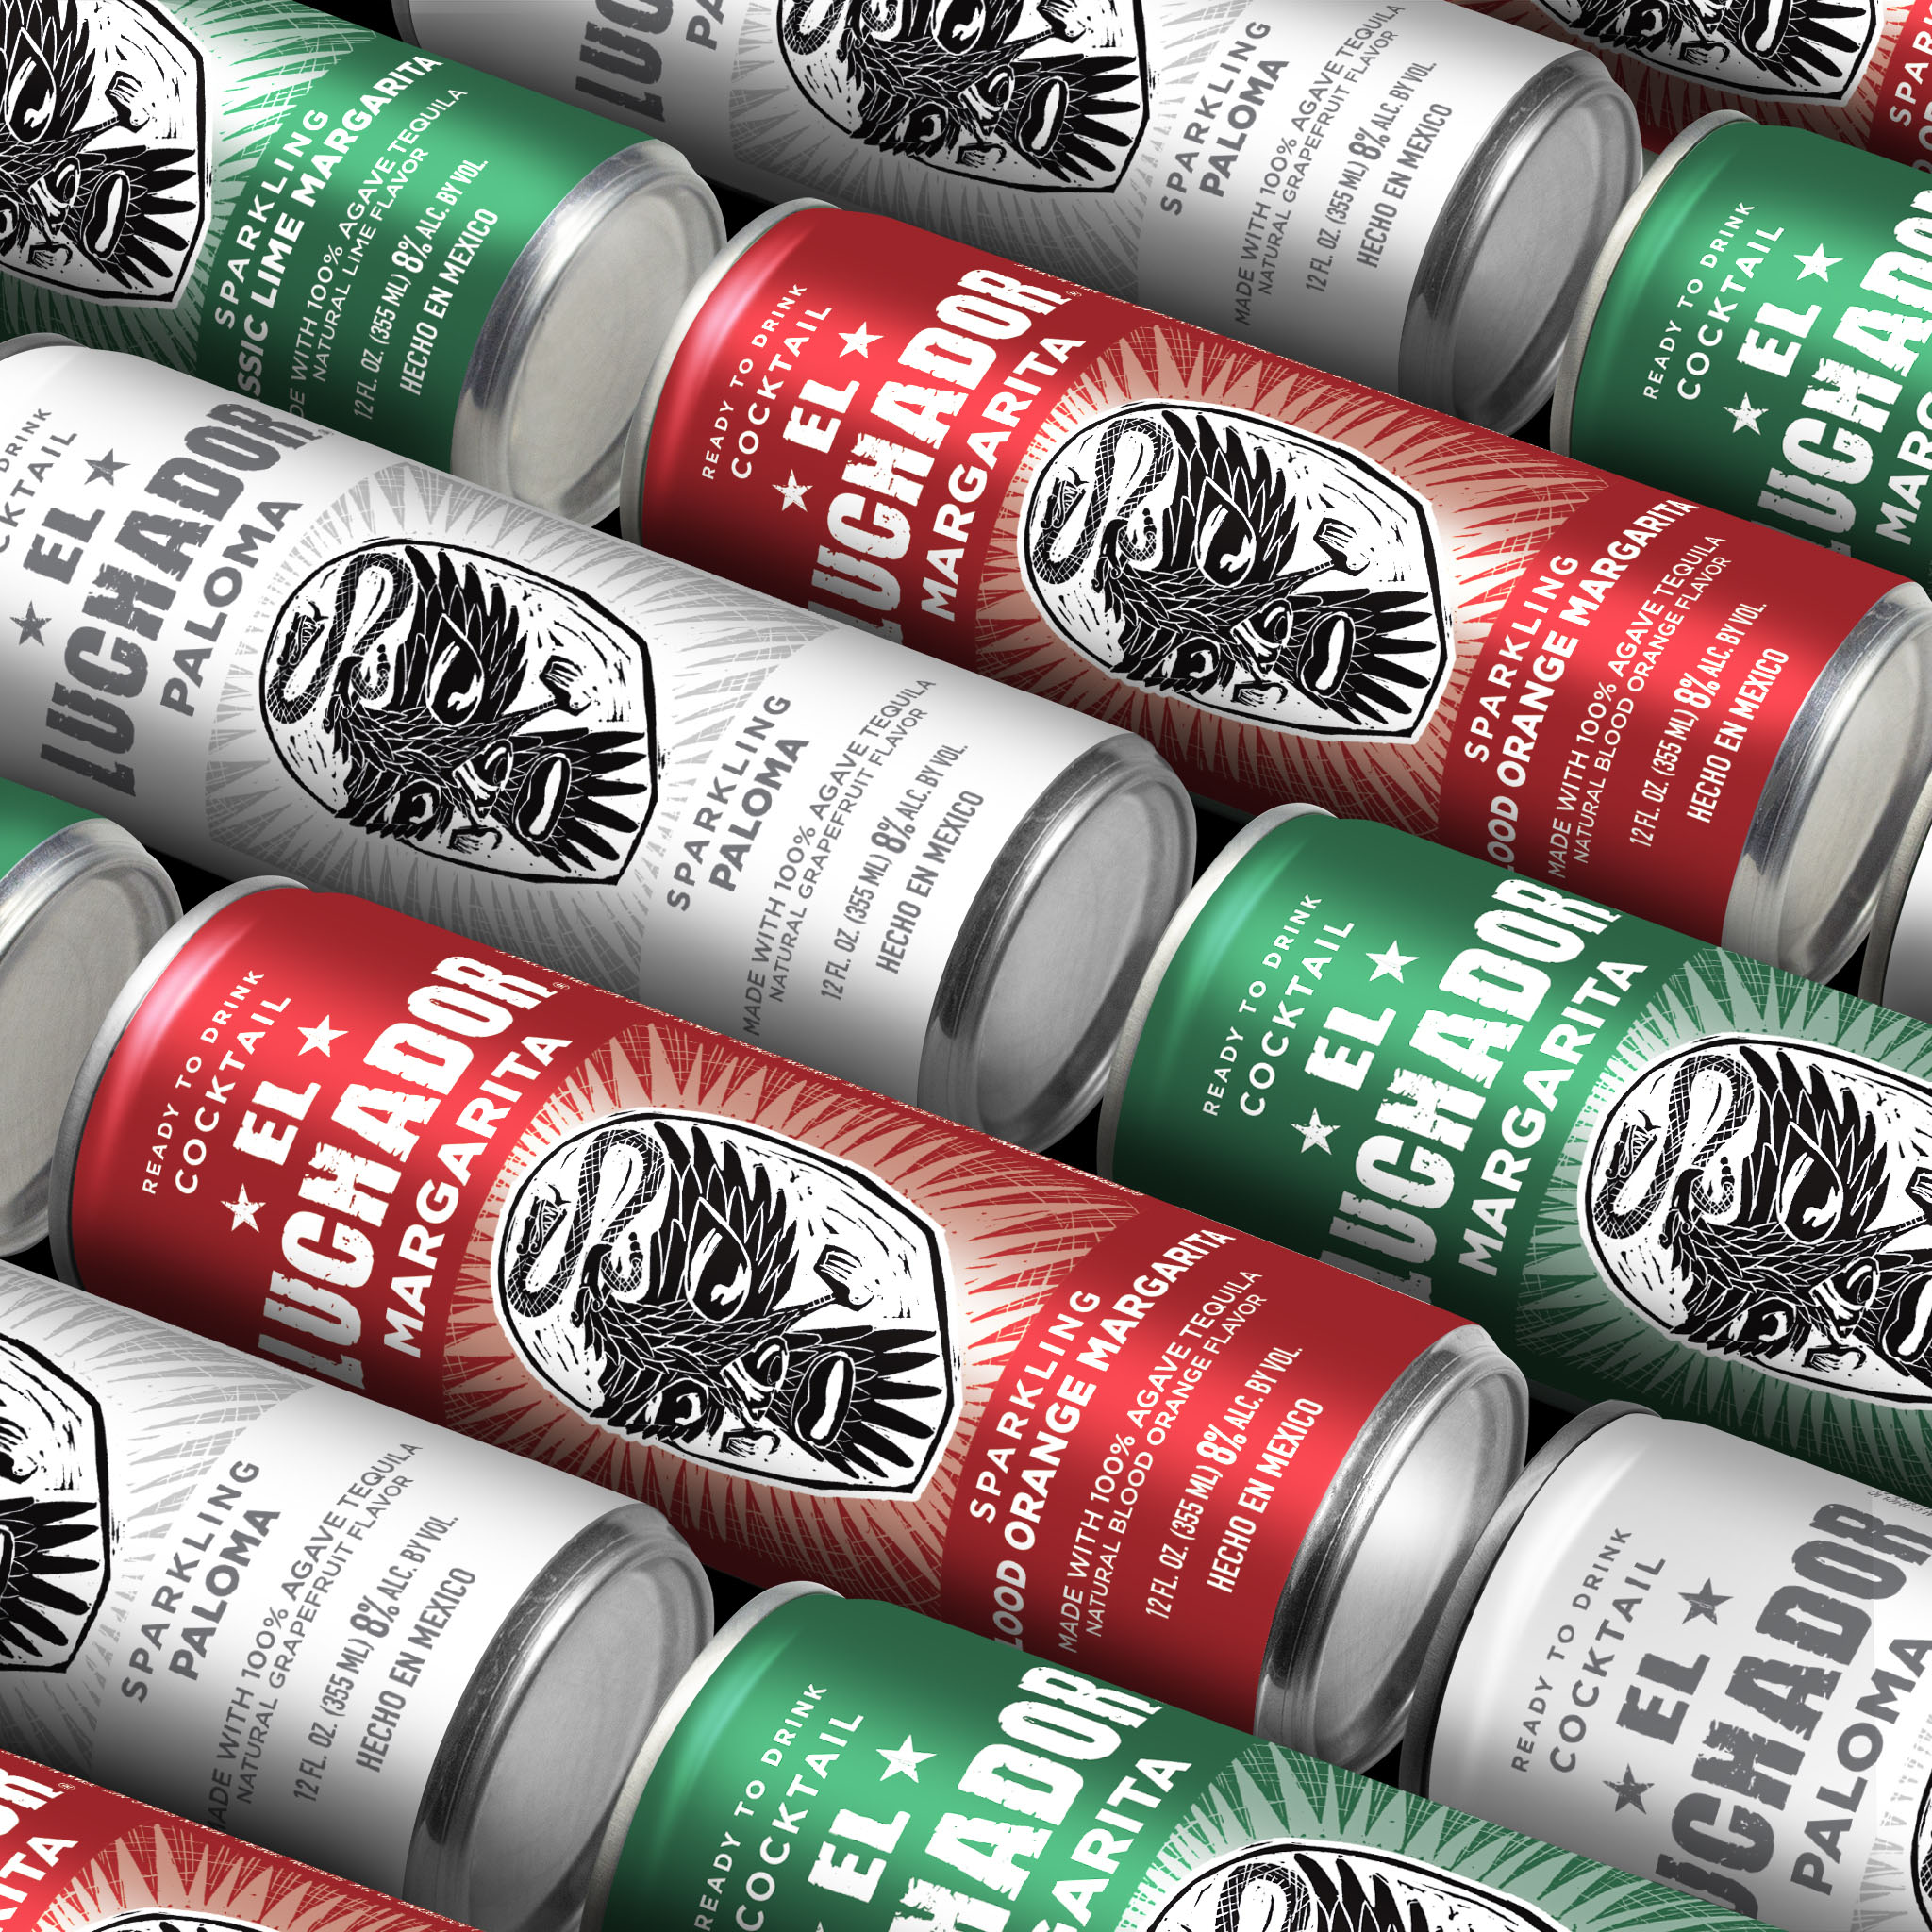 Can Packaging Design for El Luchador Ready-to-Drink Product Range Created by Van Heertum Design VHD